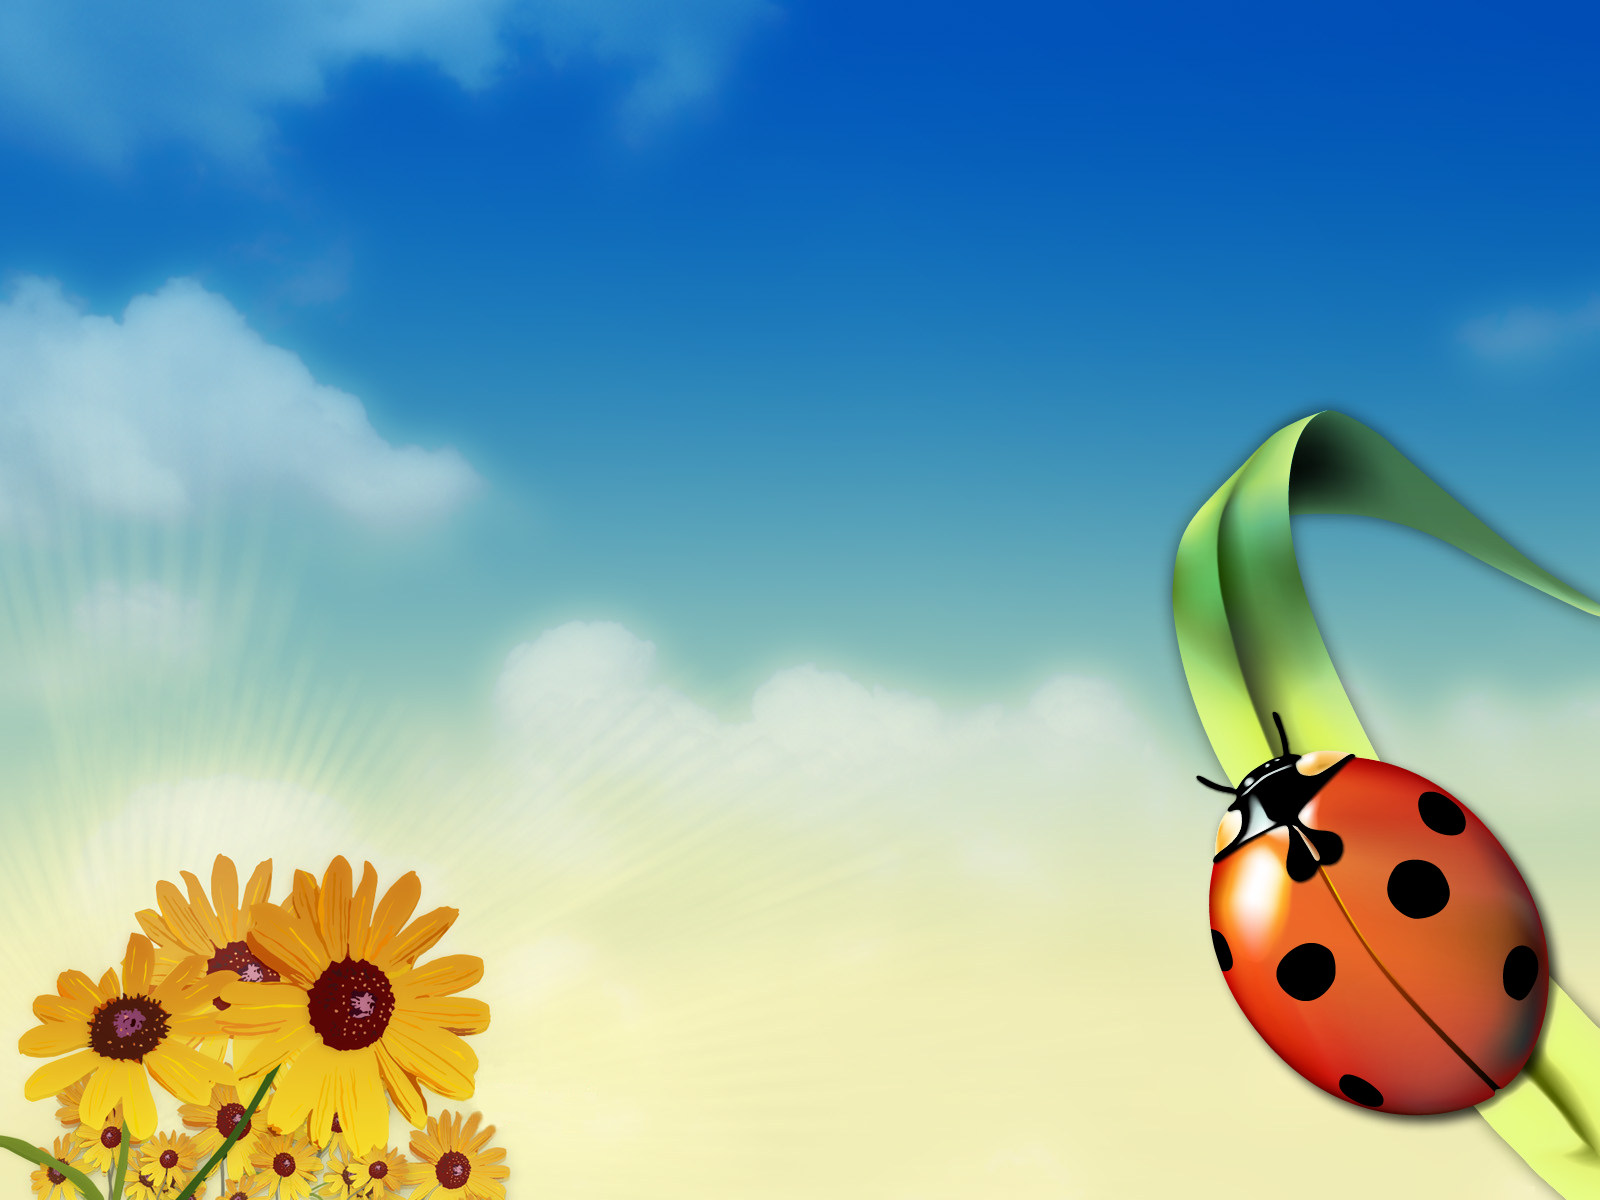 1600x1200 Bugs in summertime desktop PC and Mac wallpaper